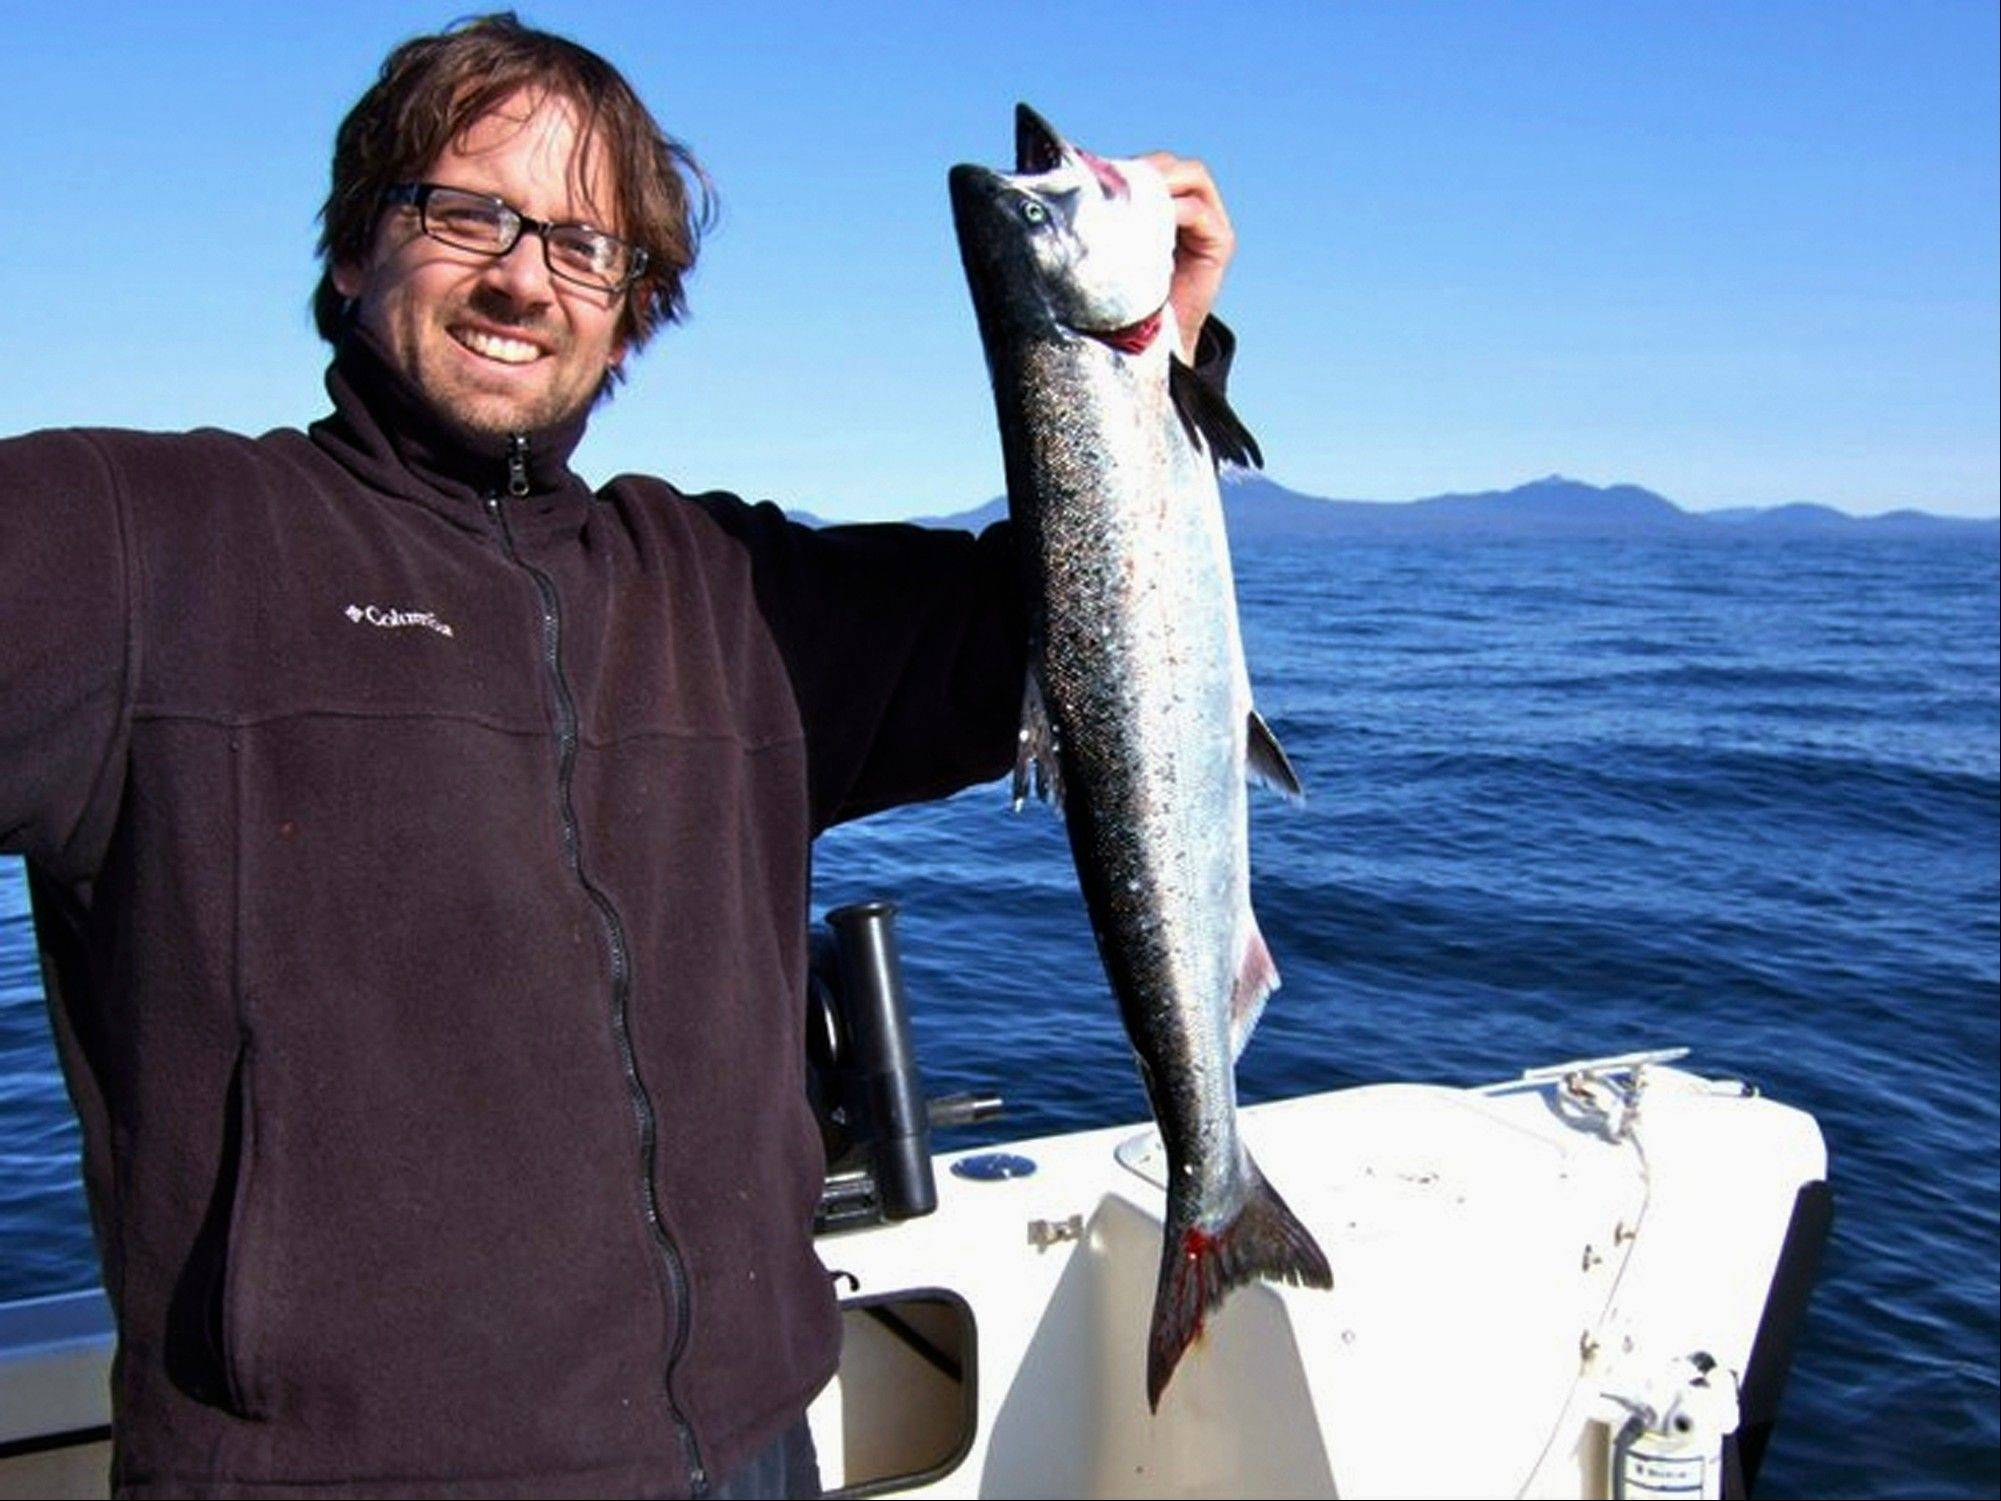 Nic Mink of Sitka Salmon Shares in Galesburg, Ill., holds up a freshly caught king salmon seven miles southwest of Sitka, Alaska. Mink is president of one of Galesburg�s most successful start-up companies. Congressional opposition to an engineered fish has so far been led by members of the Alaska delegation, who see the modified salmon as a threat to the state�s wild salmon industry.